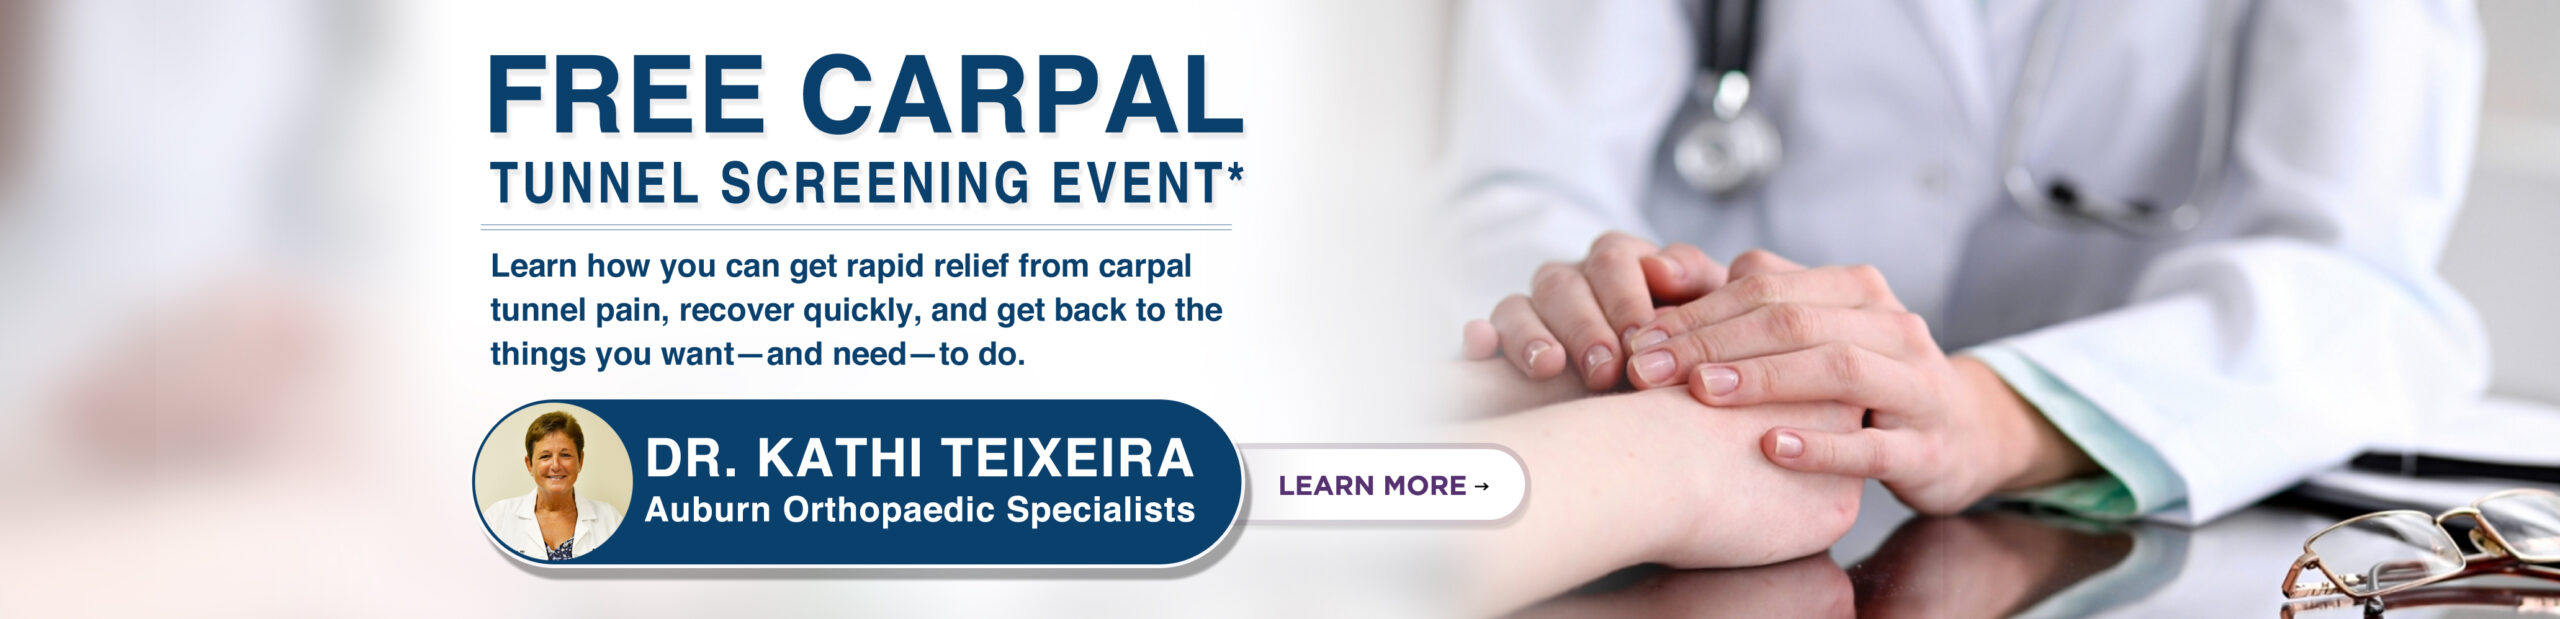 Carpal Tunnel Event